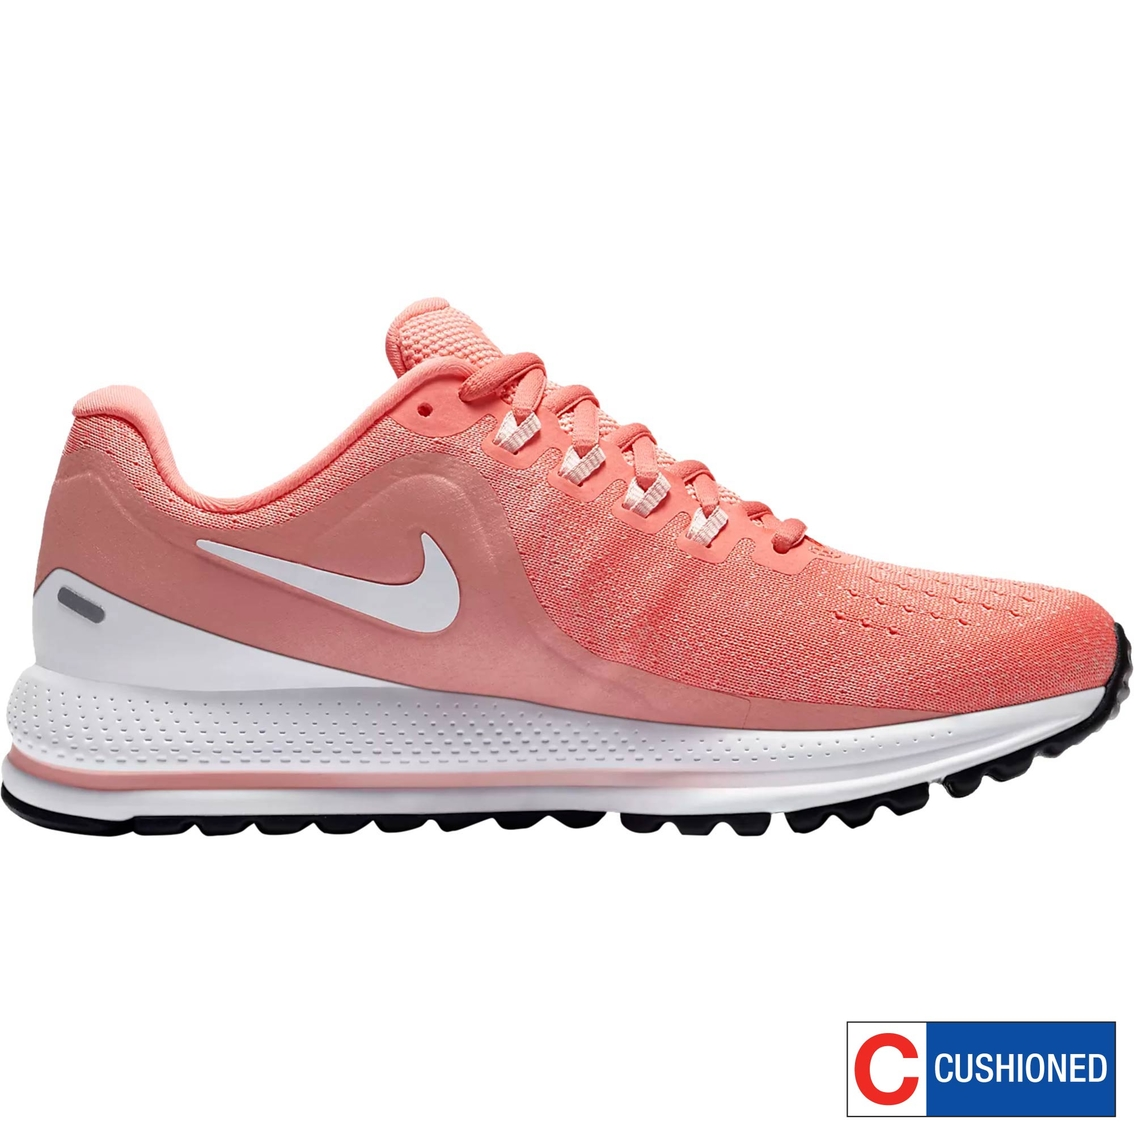 923bf995ce157 Nike Women s Air Zoom Vomero 13 Running Shoes